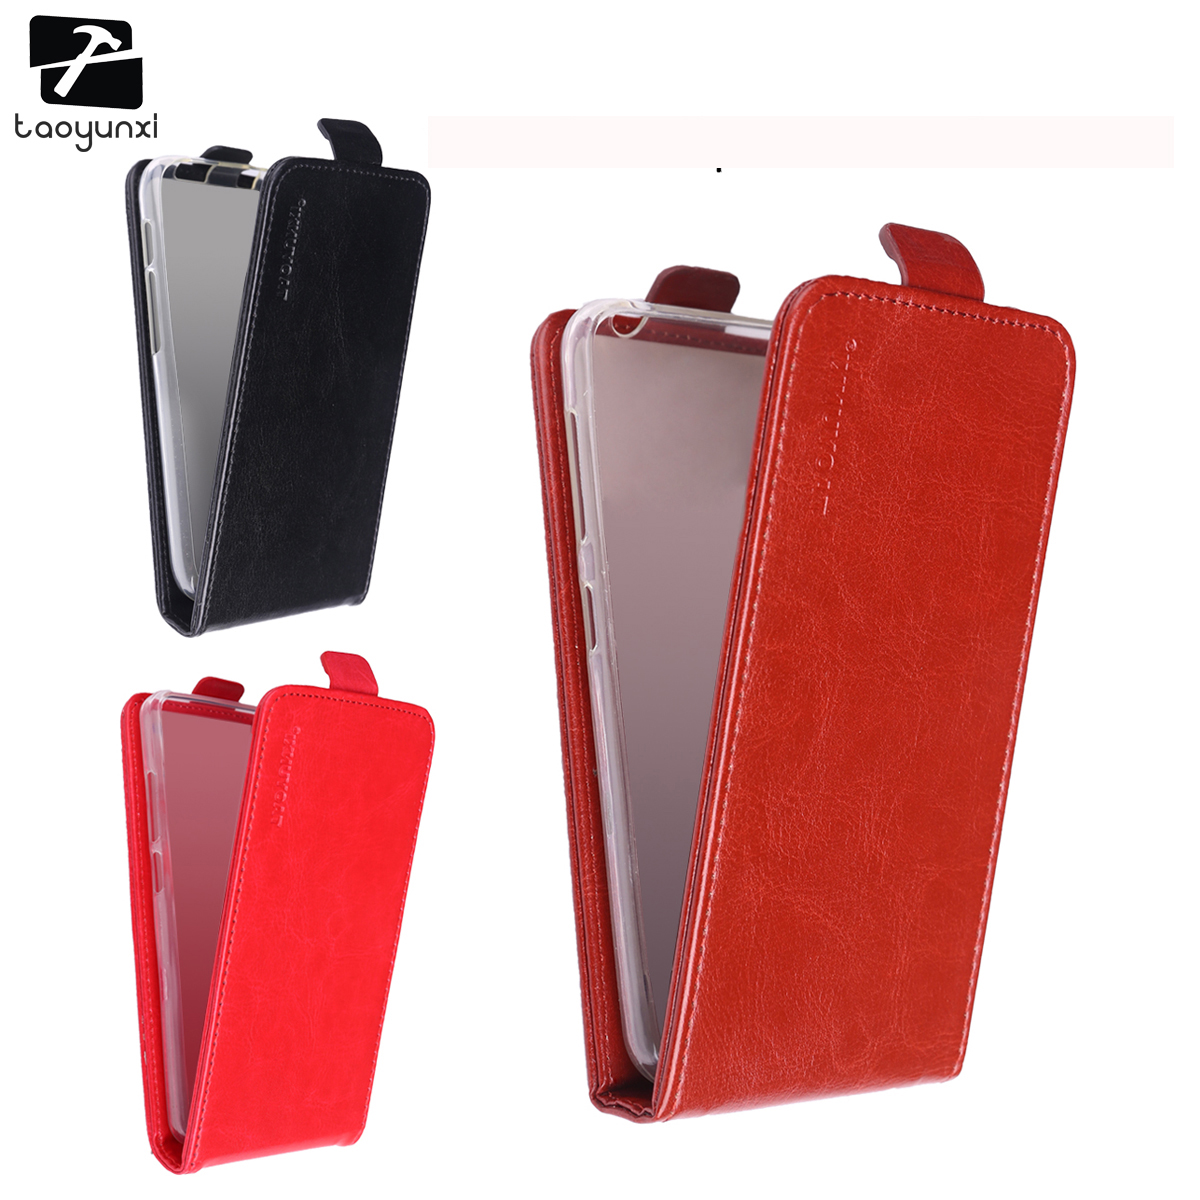 TAOYUNXI PU Leather Flip Cases For Fly IQ4416 Fly quad Era Life 5 IQ 4416 life5 IQ4516 GN9005 Cases Cover Holster bag